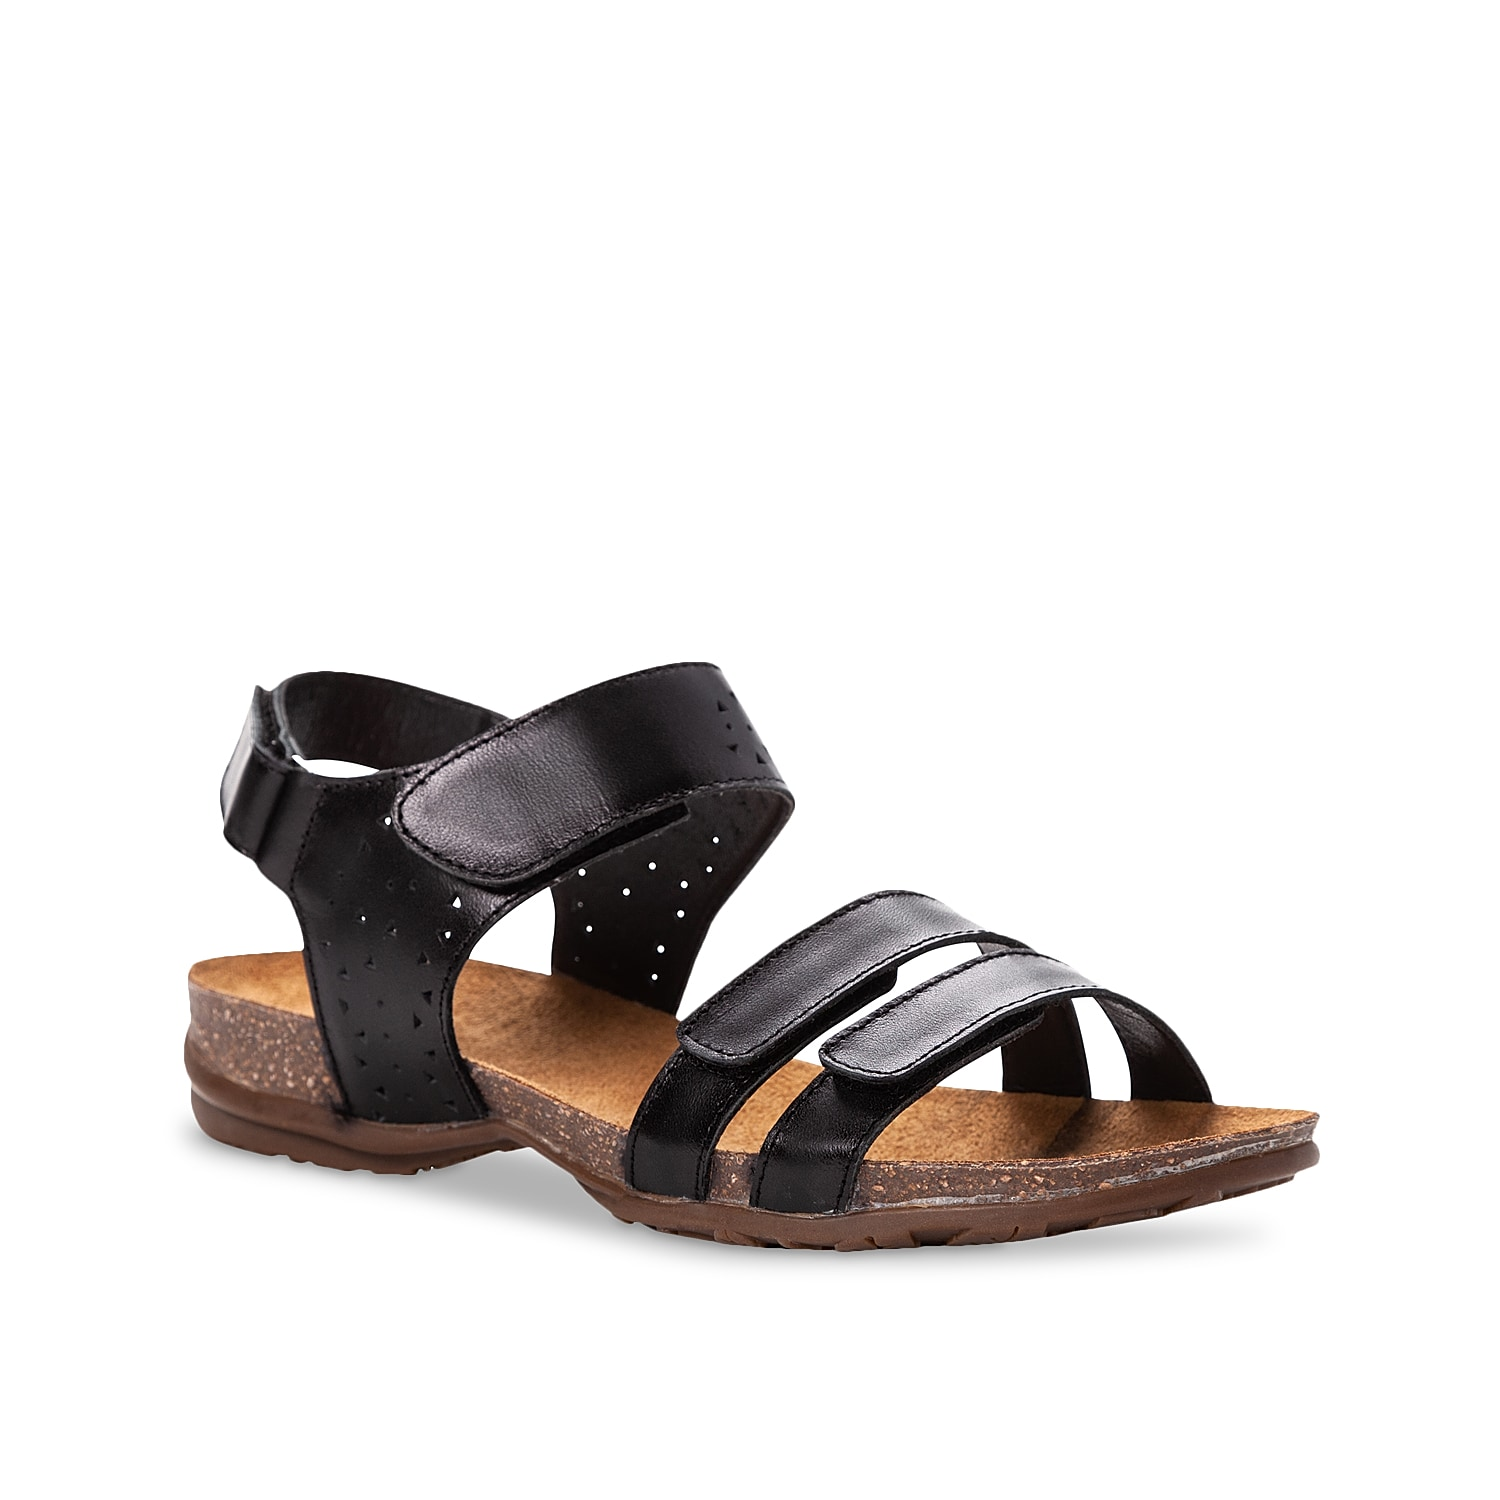 Get the support you need with the Farrah sandal from Propet. Four hook and loop straps create a perfect fit while the contoured footbed keeps every step feeling comfortable.